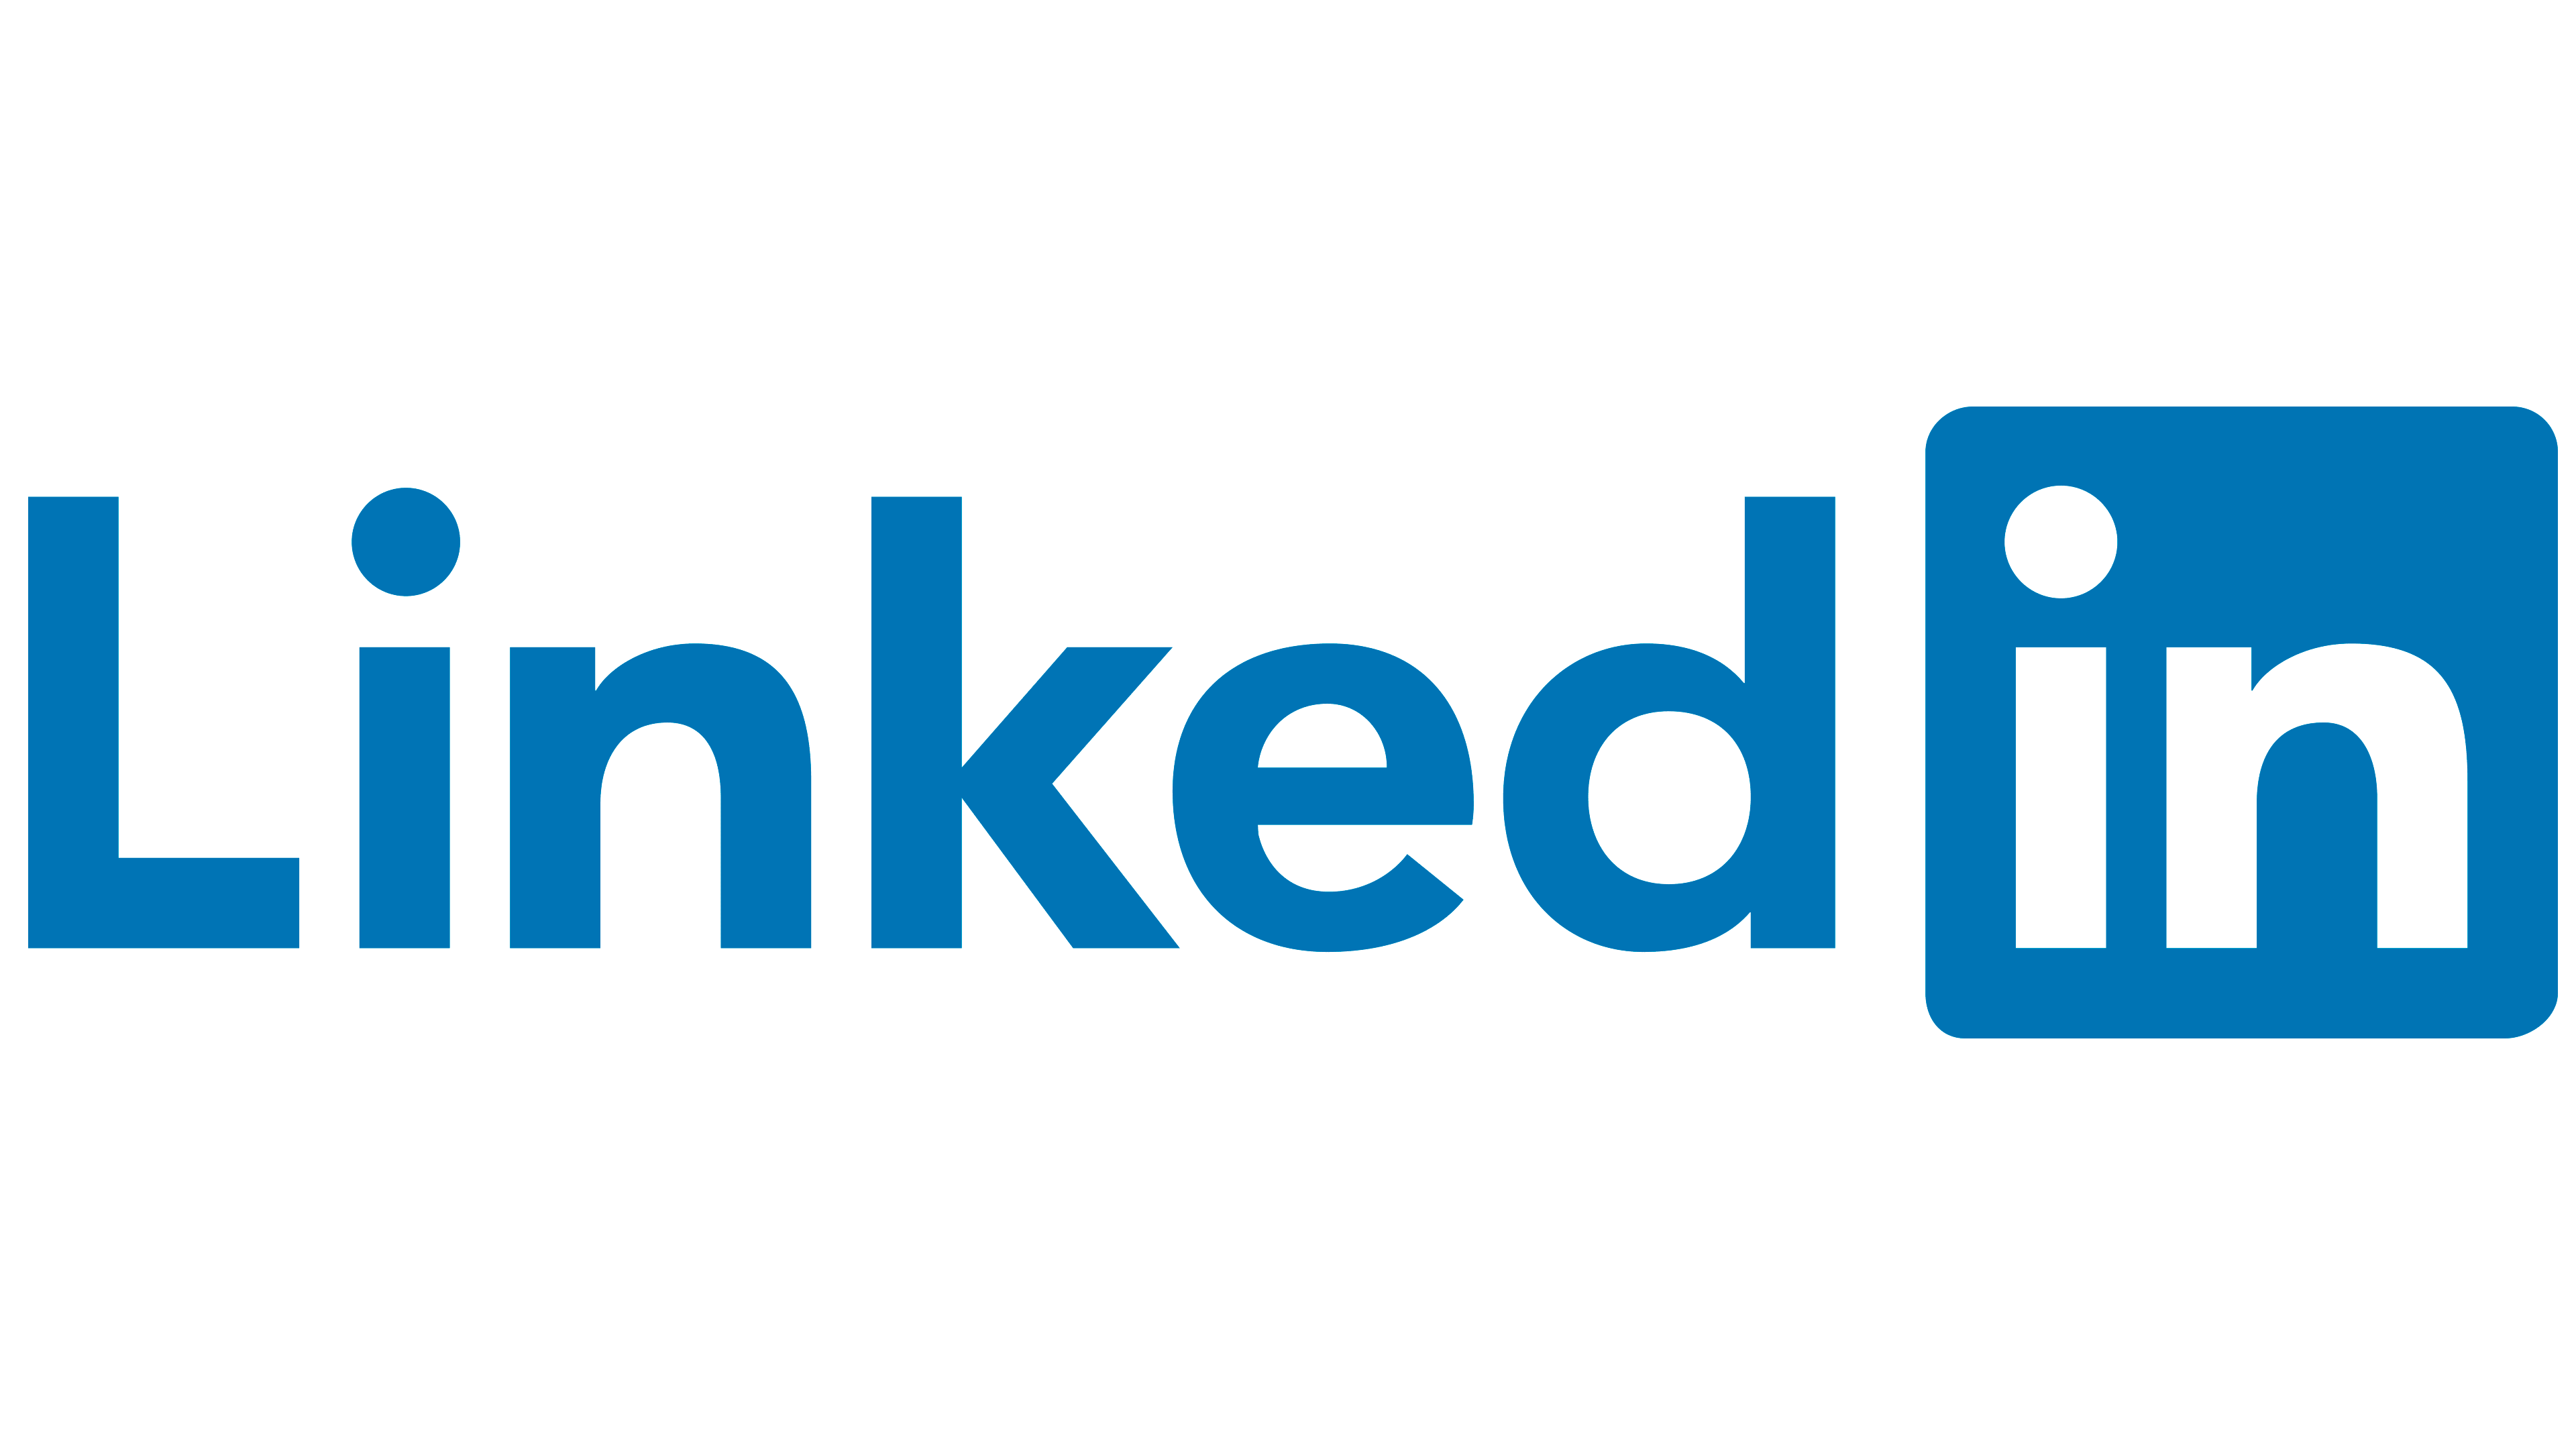 Linkedin Logo | The most famous brands and company logos in the world